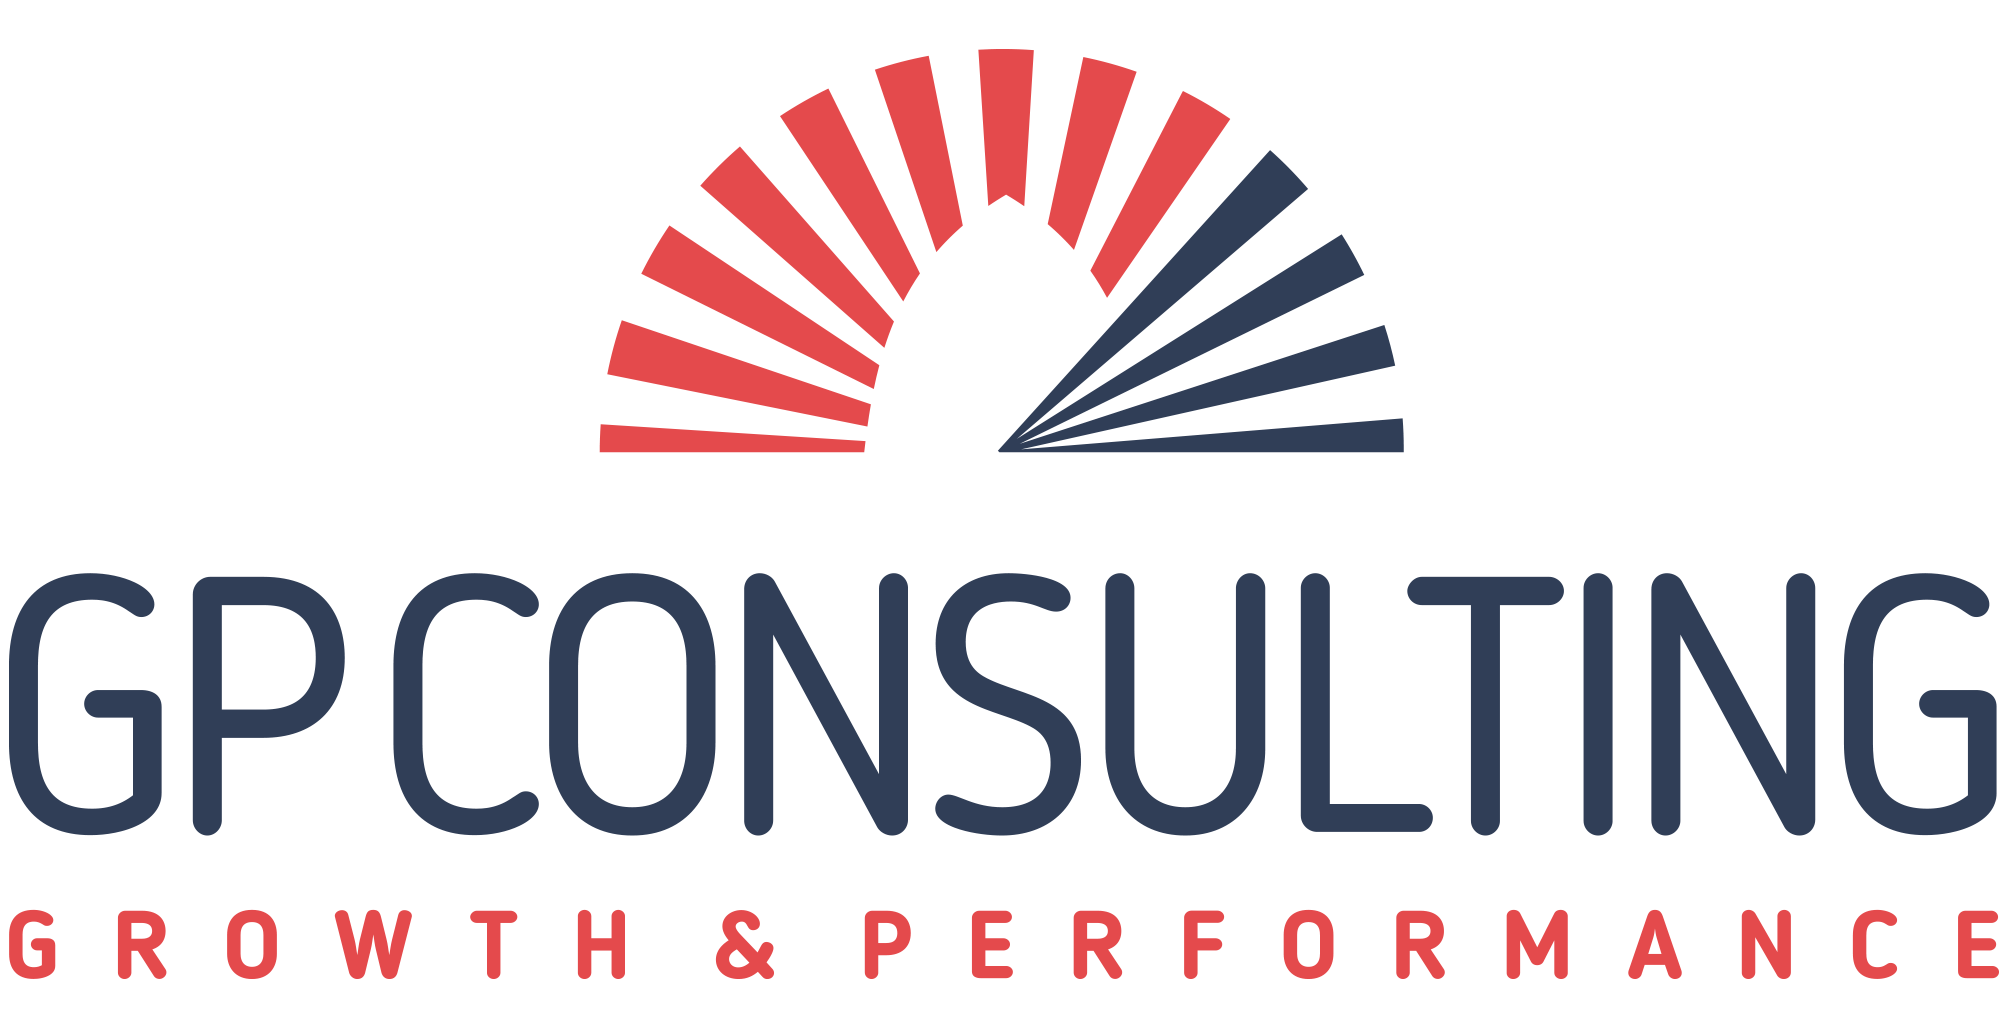 Growth & Performance Business Consulting Services